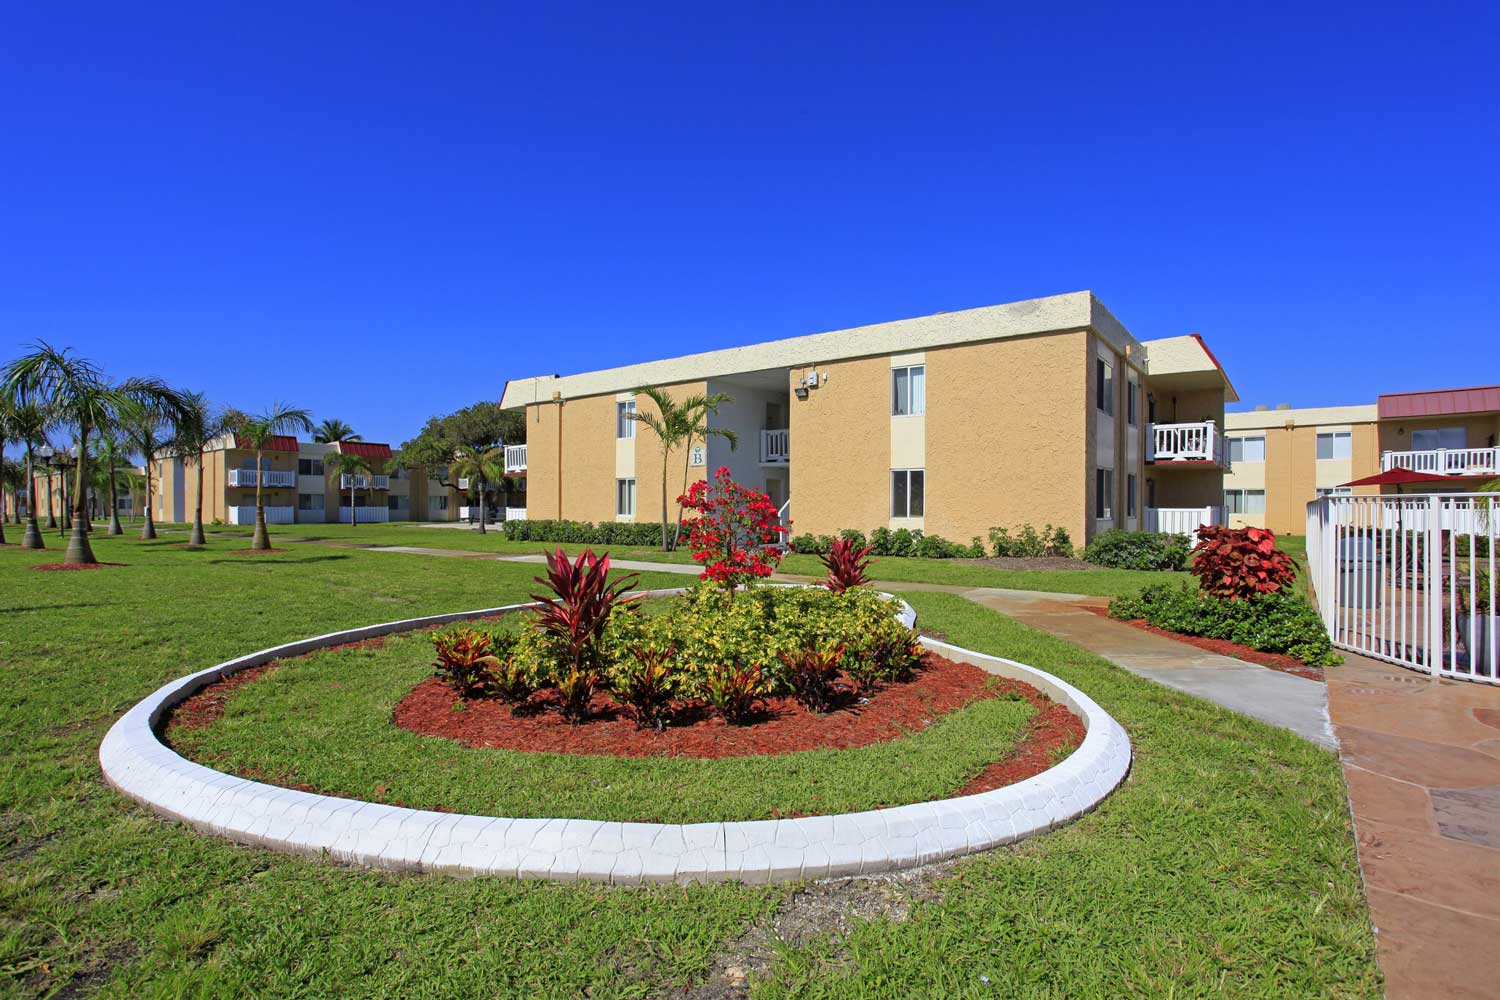 Lush, Green Outdoor Spaces at Windsor Forest Apartments in Pompano Beach, FL